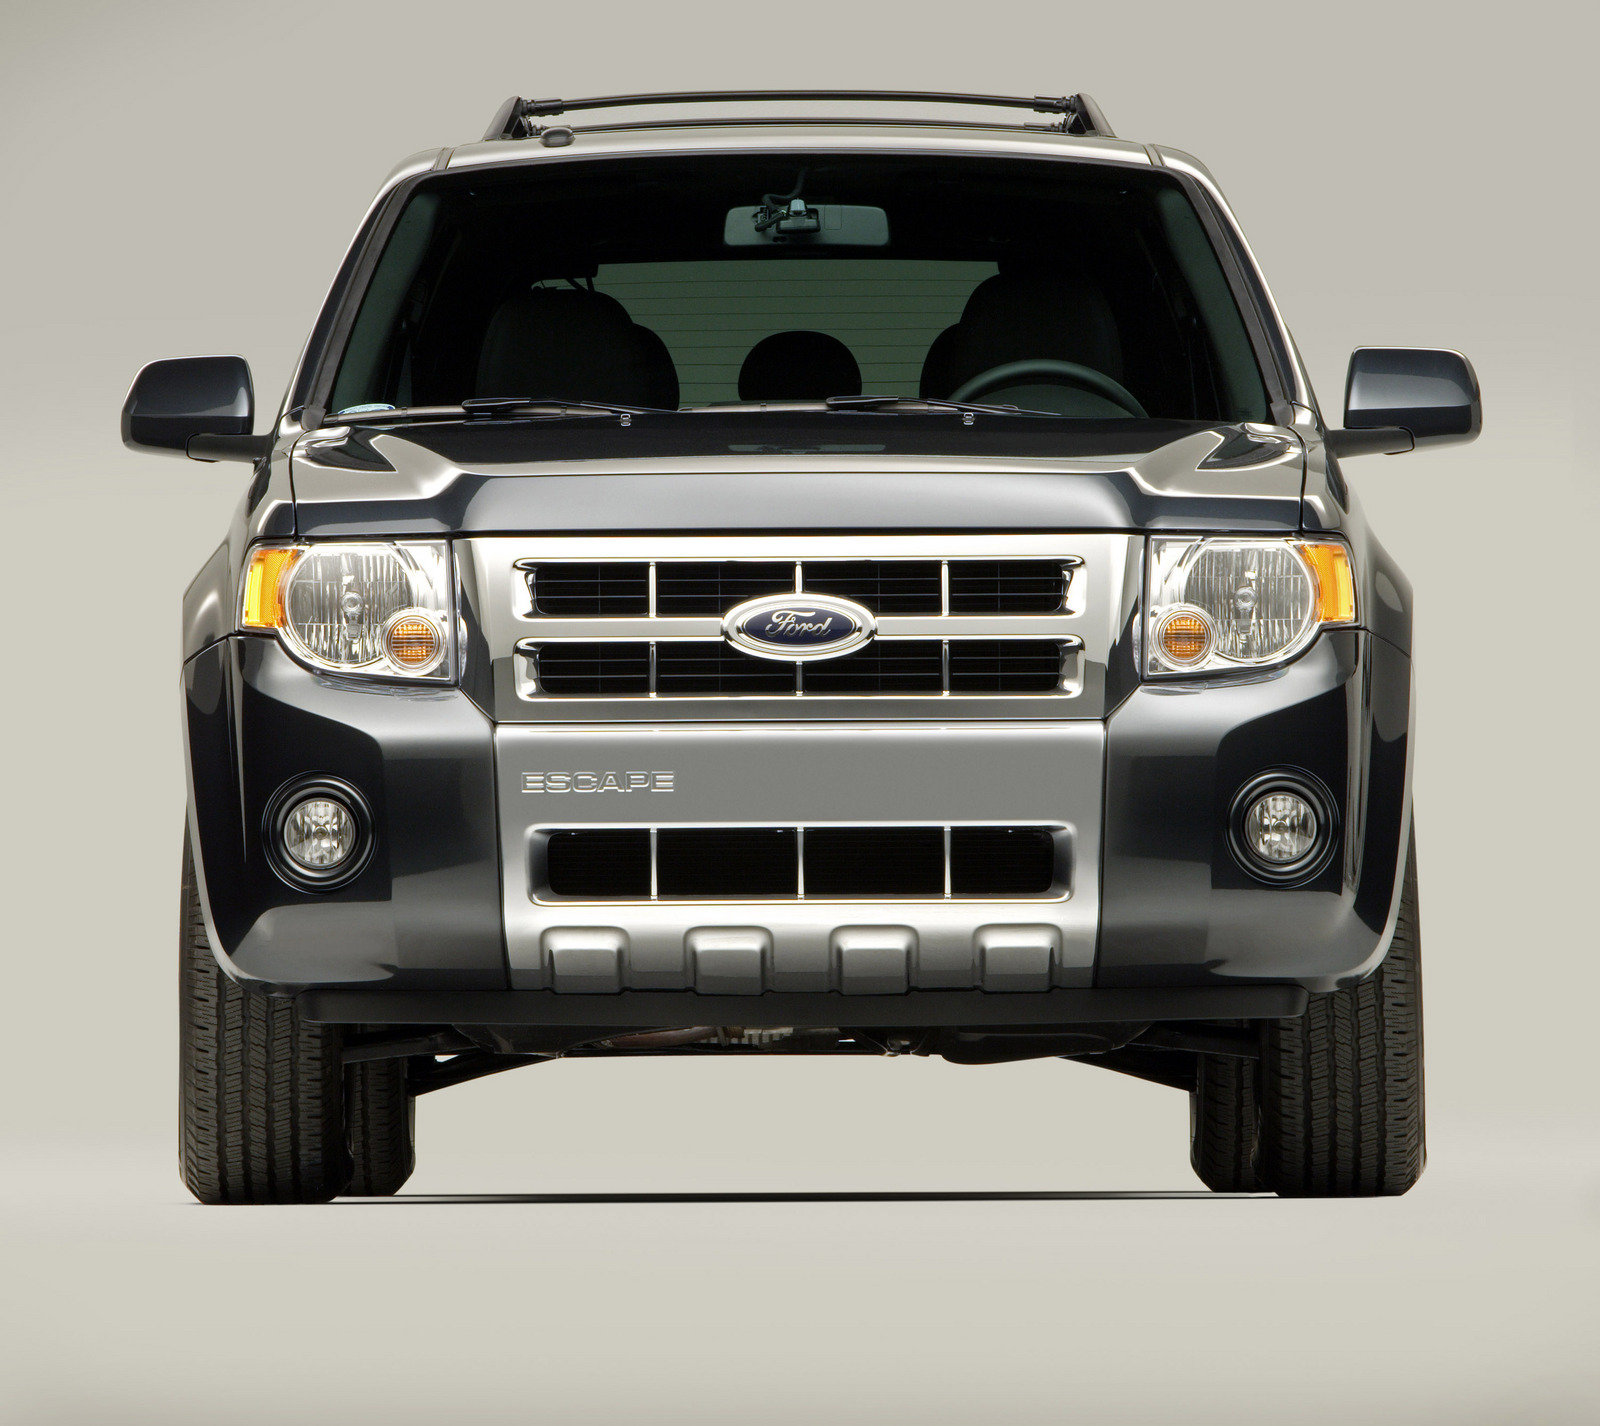 2008 ford escape review top speed. Black Bedroom Furniture Sets. Home Design Ideas